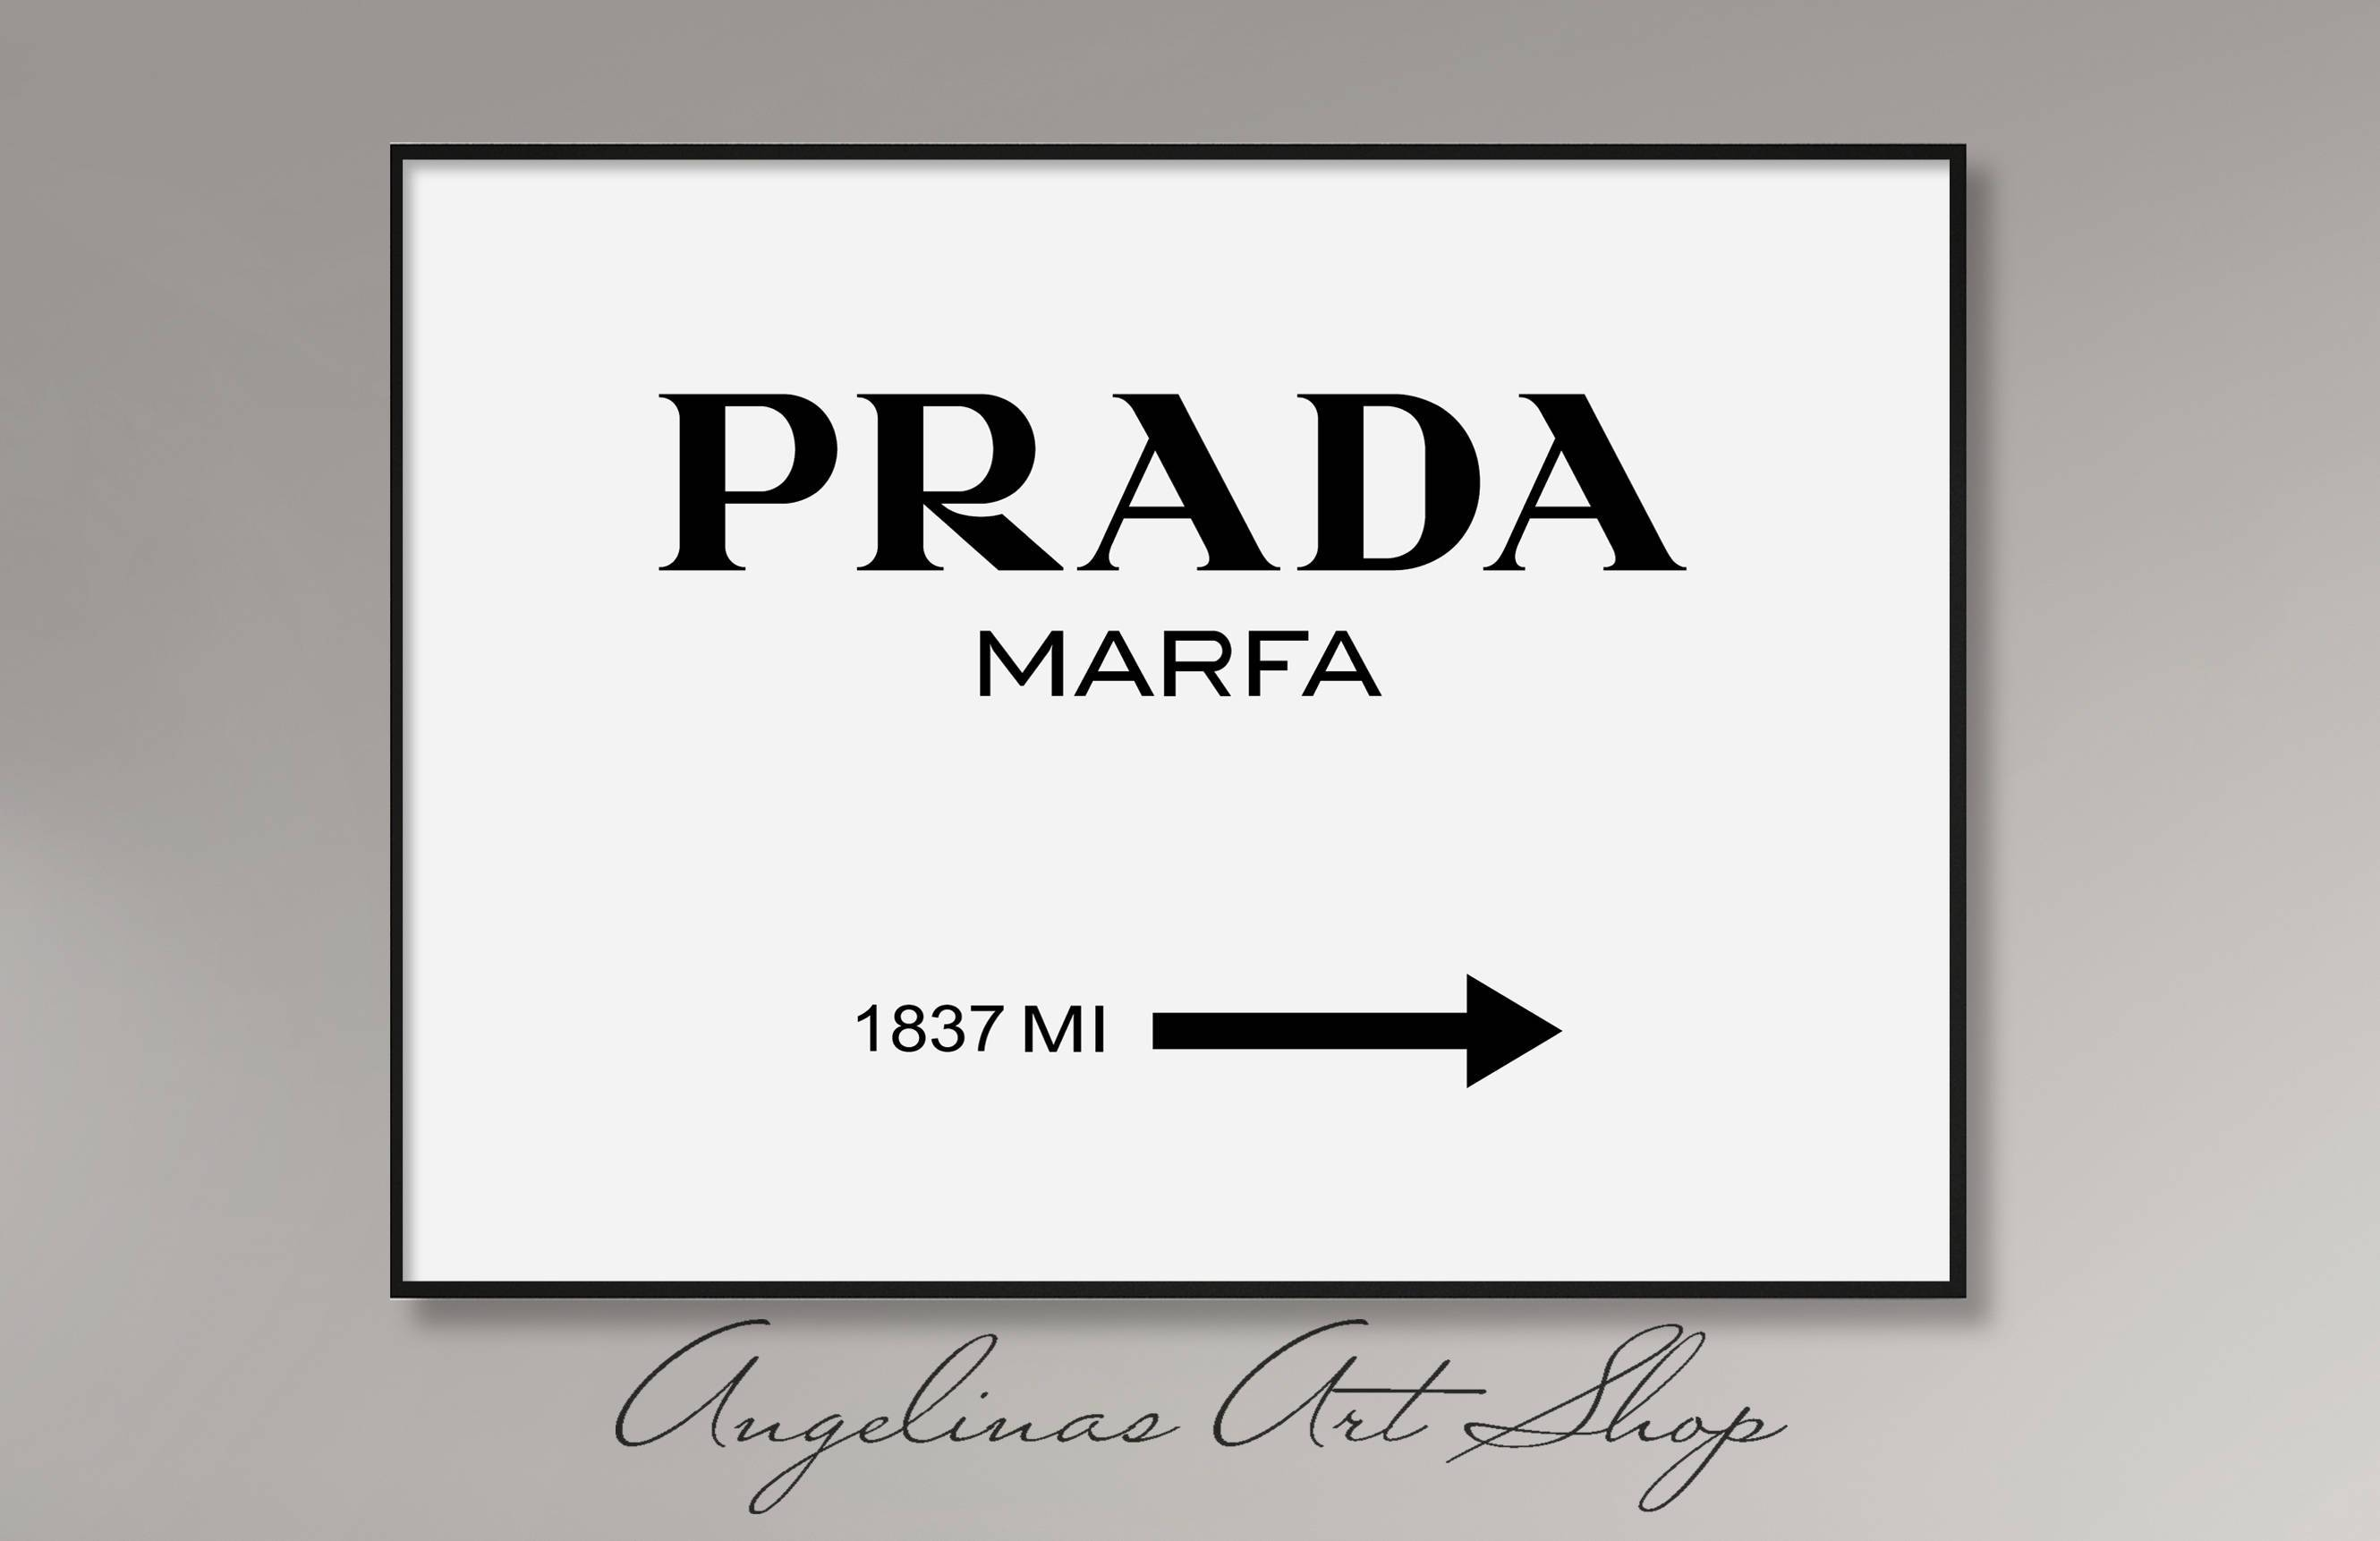 Prada Marfa Wall Art Fashion Print Fashion Logo Fashion Inside 2018 Prada Wall Art (View 20 of 25)